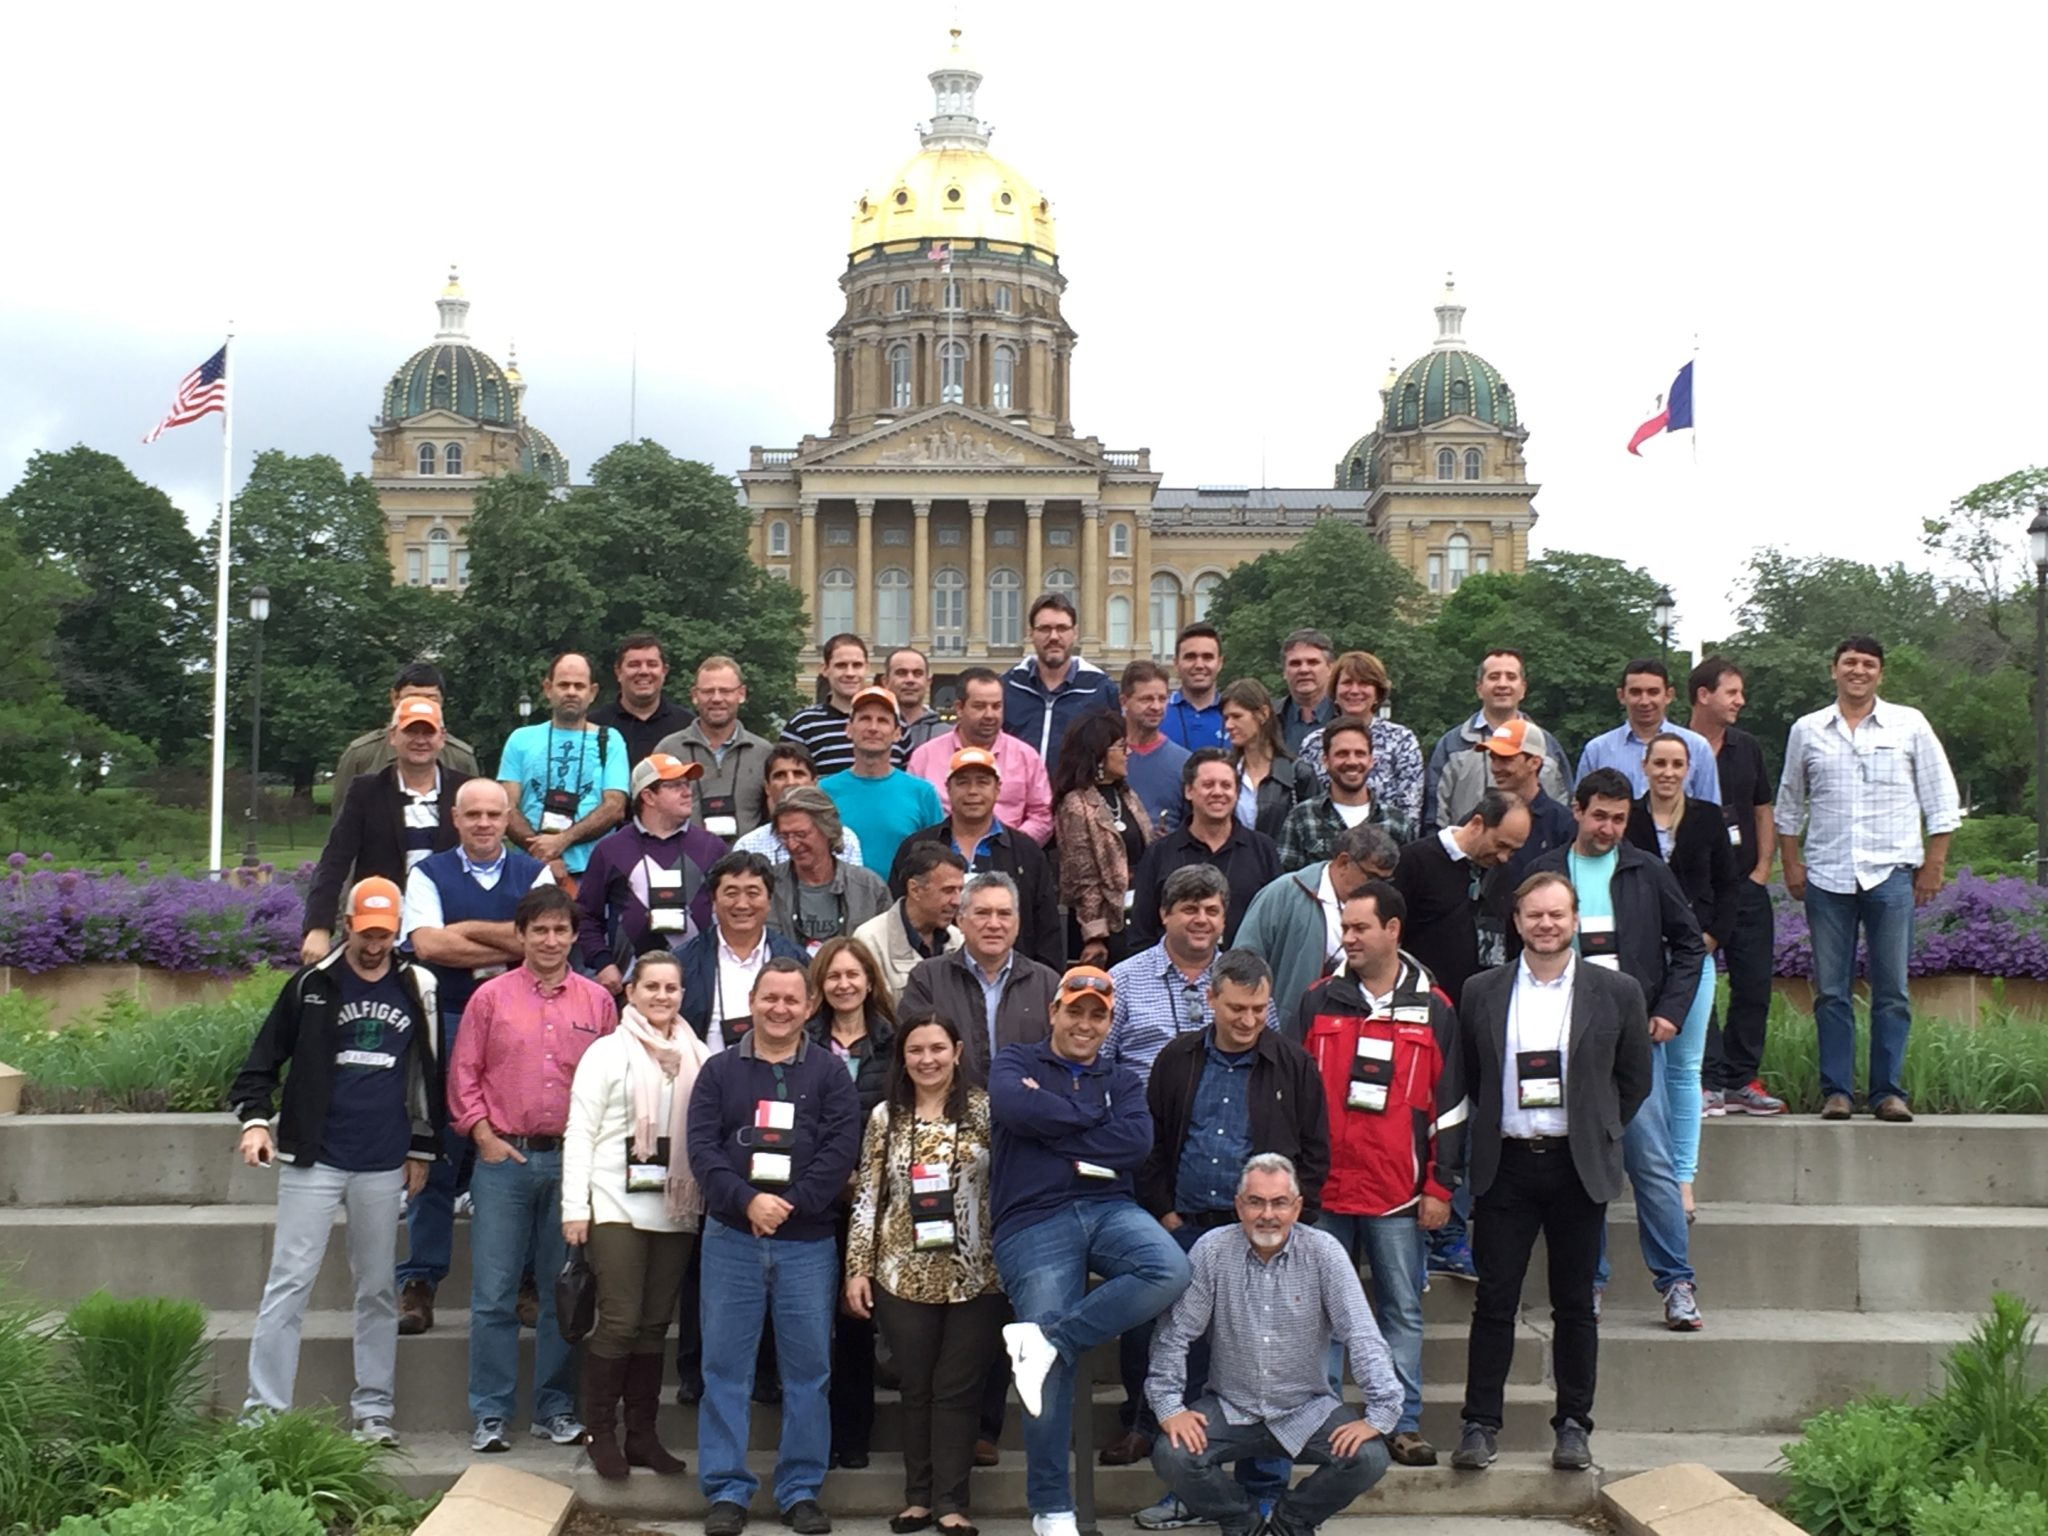 agtours.us tour group on steps in front of a capital building